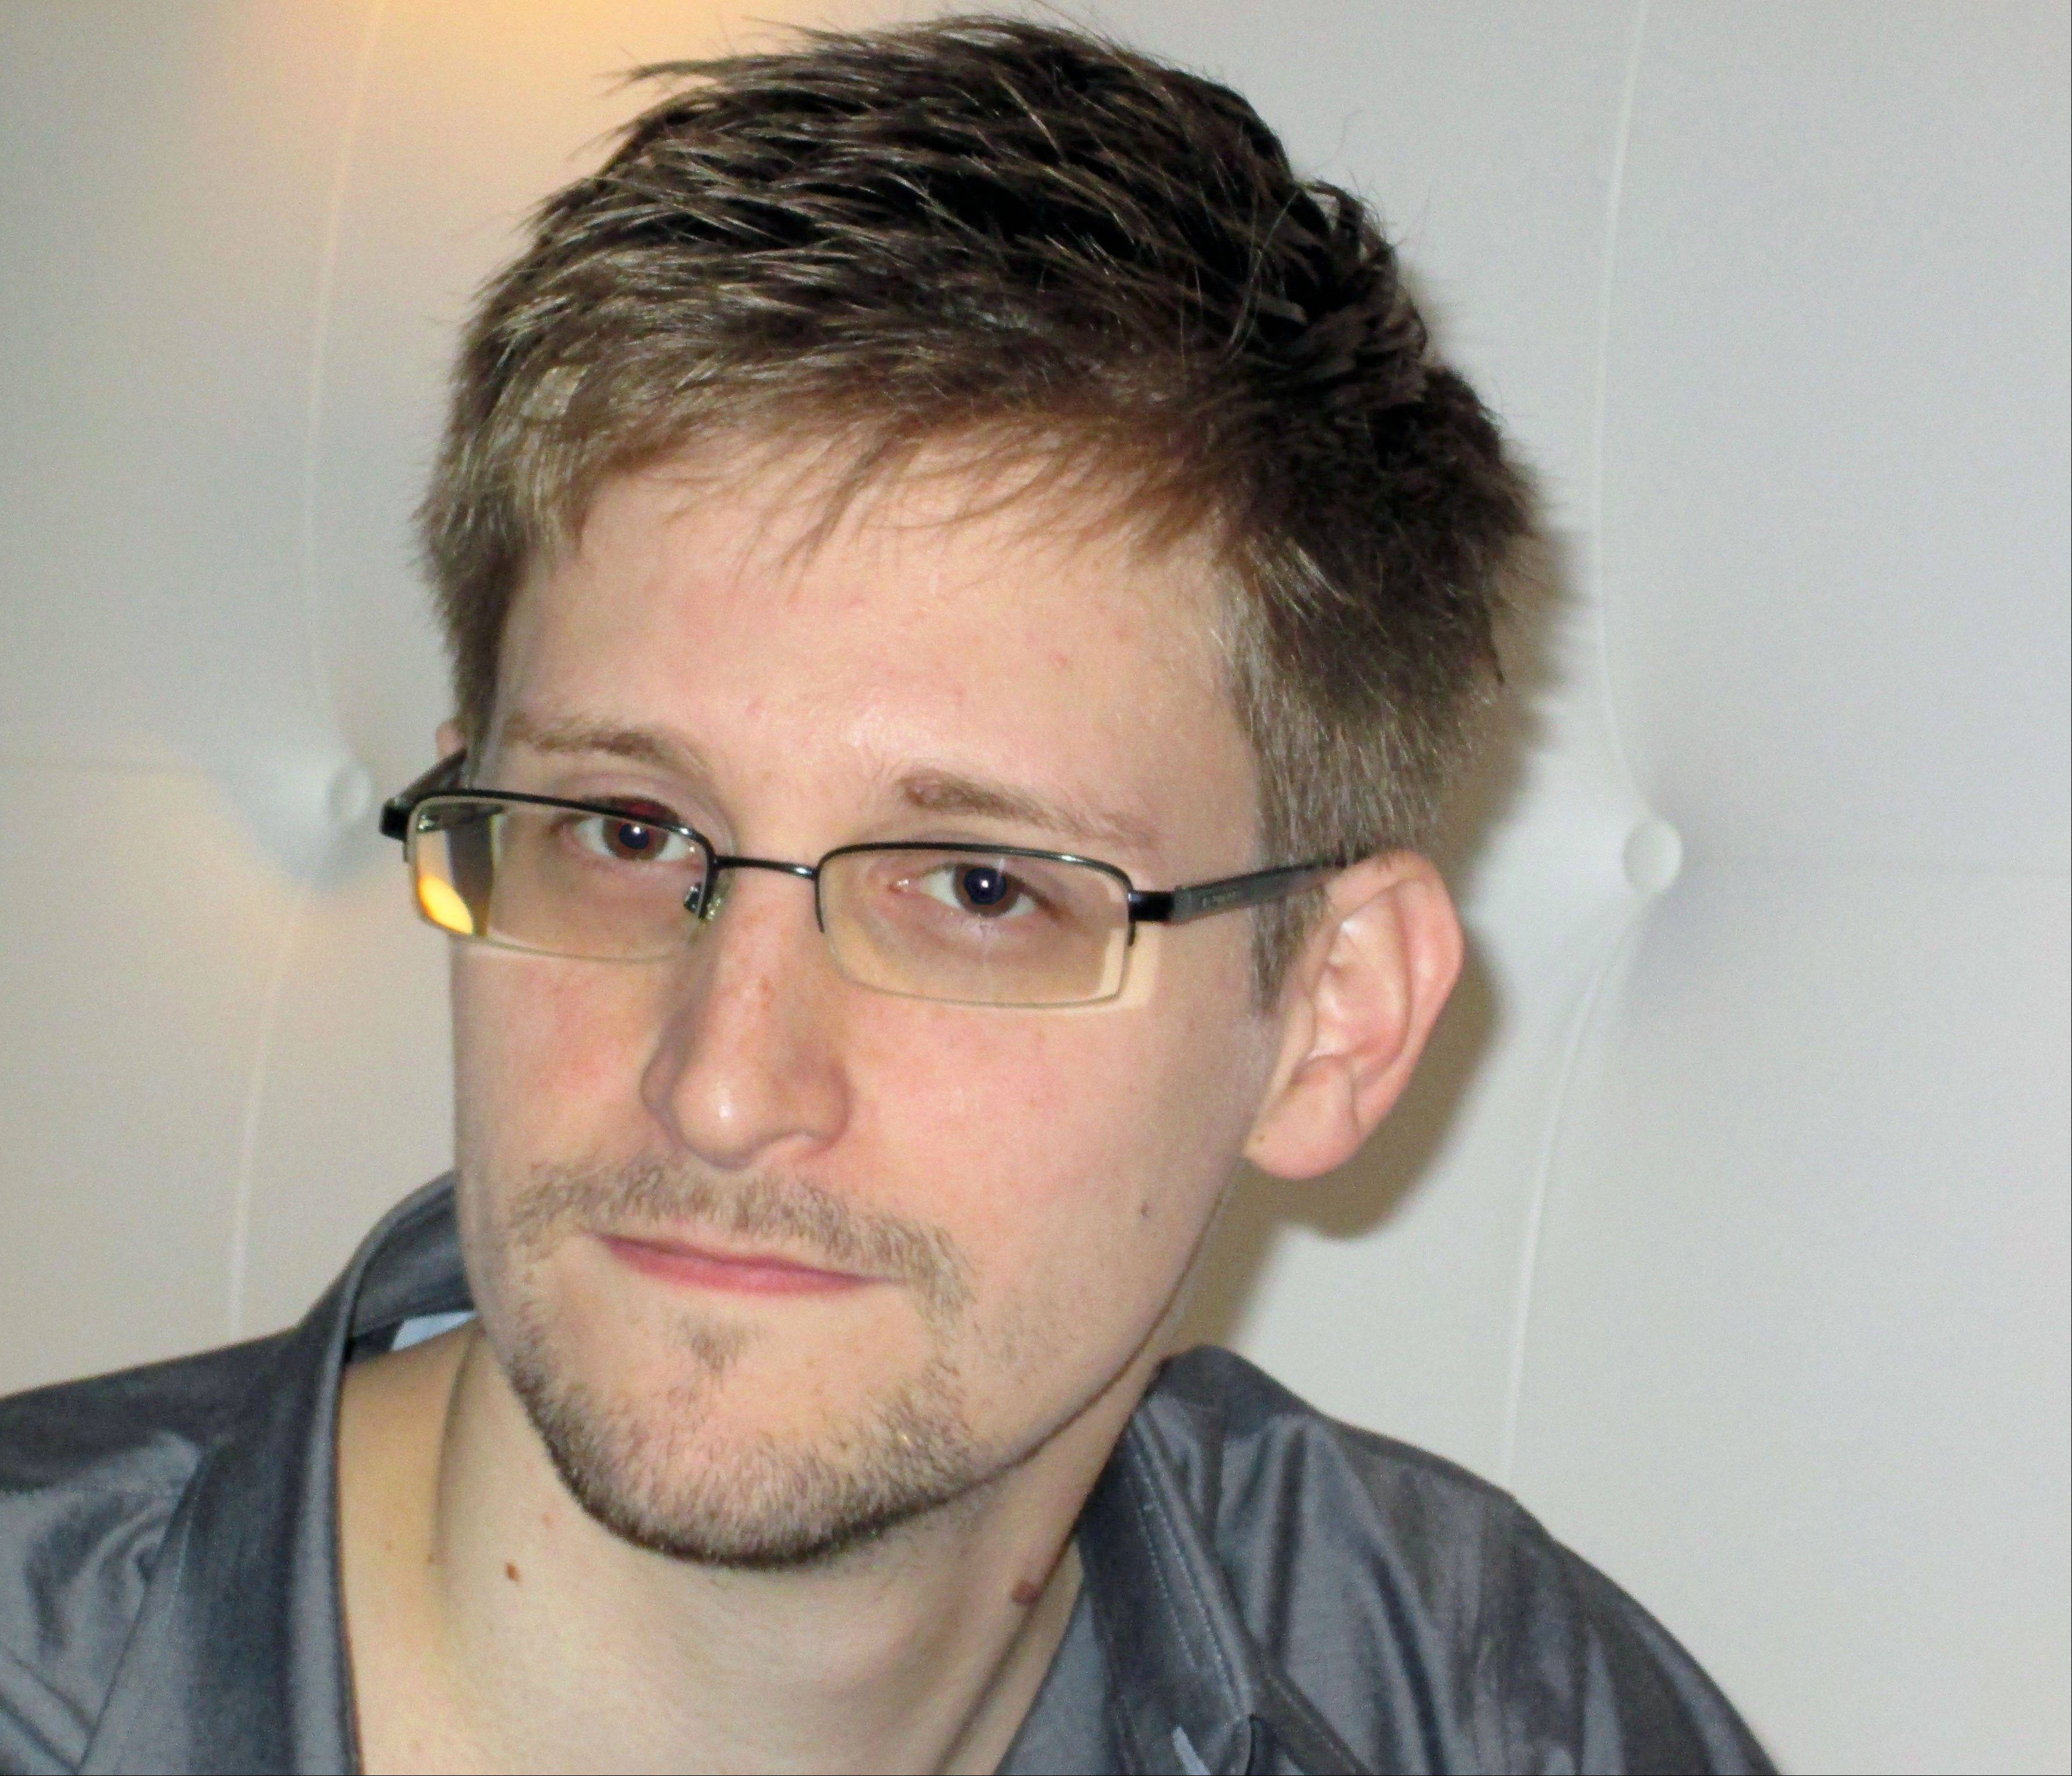 Edward Snowden, 29, worked as a contract employee at the National Security Agency and is the source of The Guardian's disclosures about the U.S. government's secret surveillance programs, as the British newspaper reported Sunday.